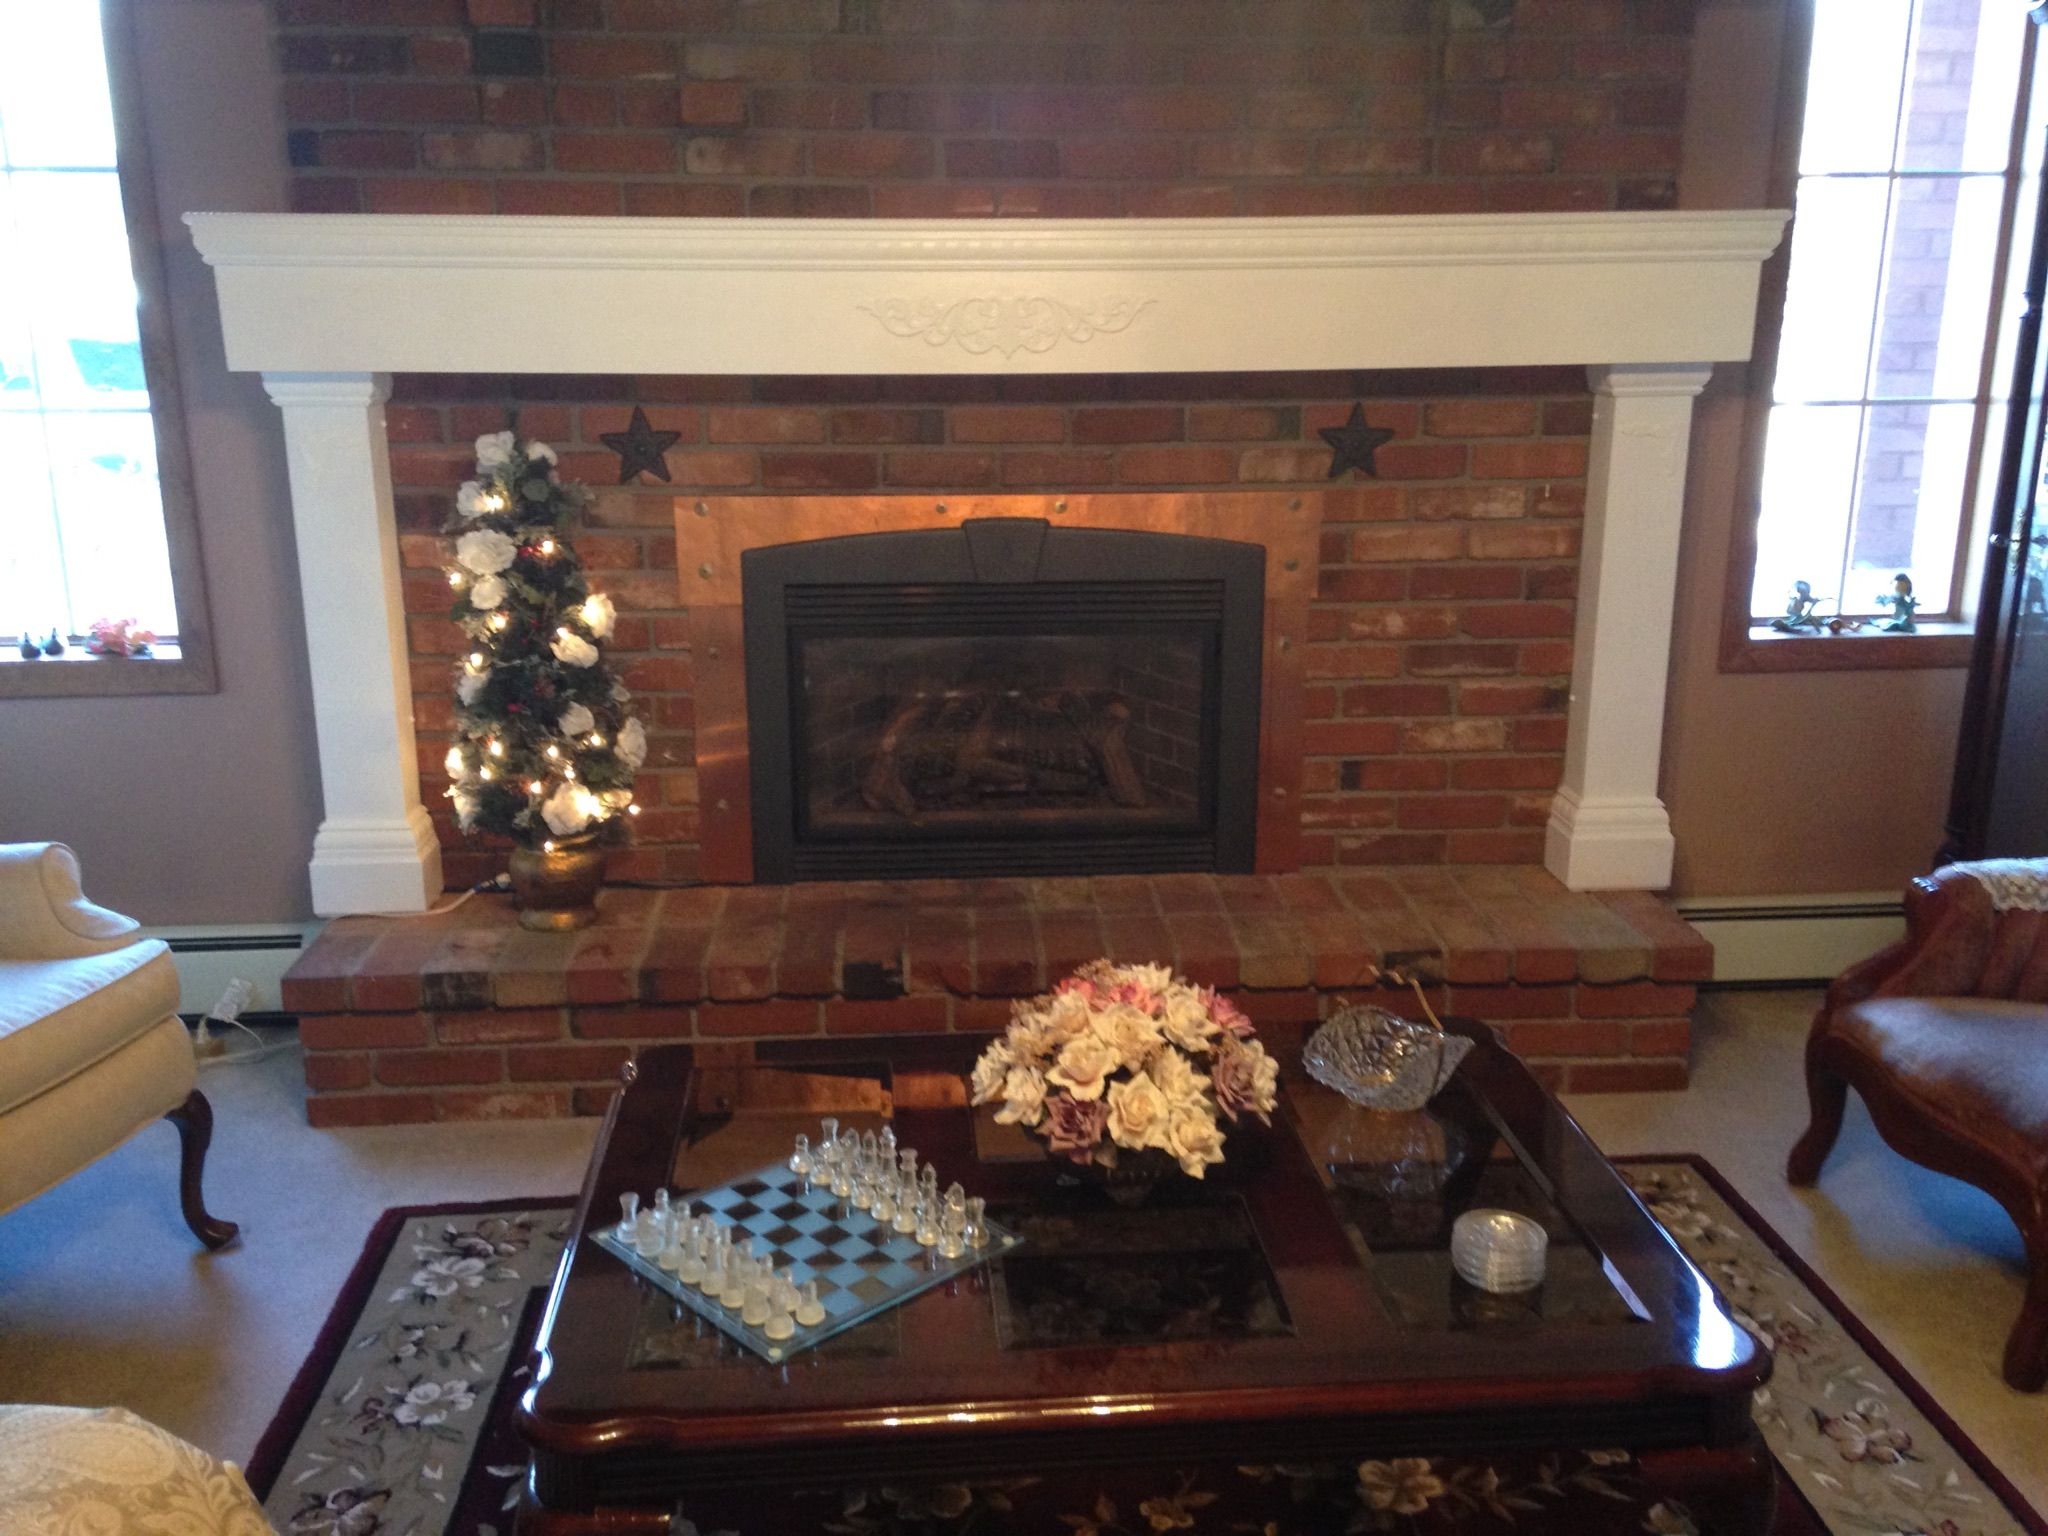 Finished our mantel fireplace mantel white fireplace mantel wrap